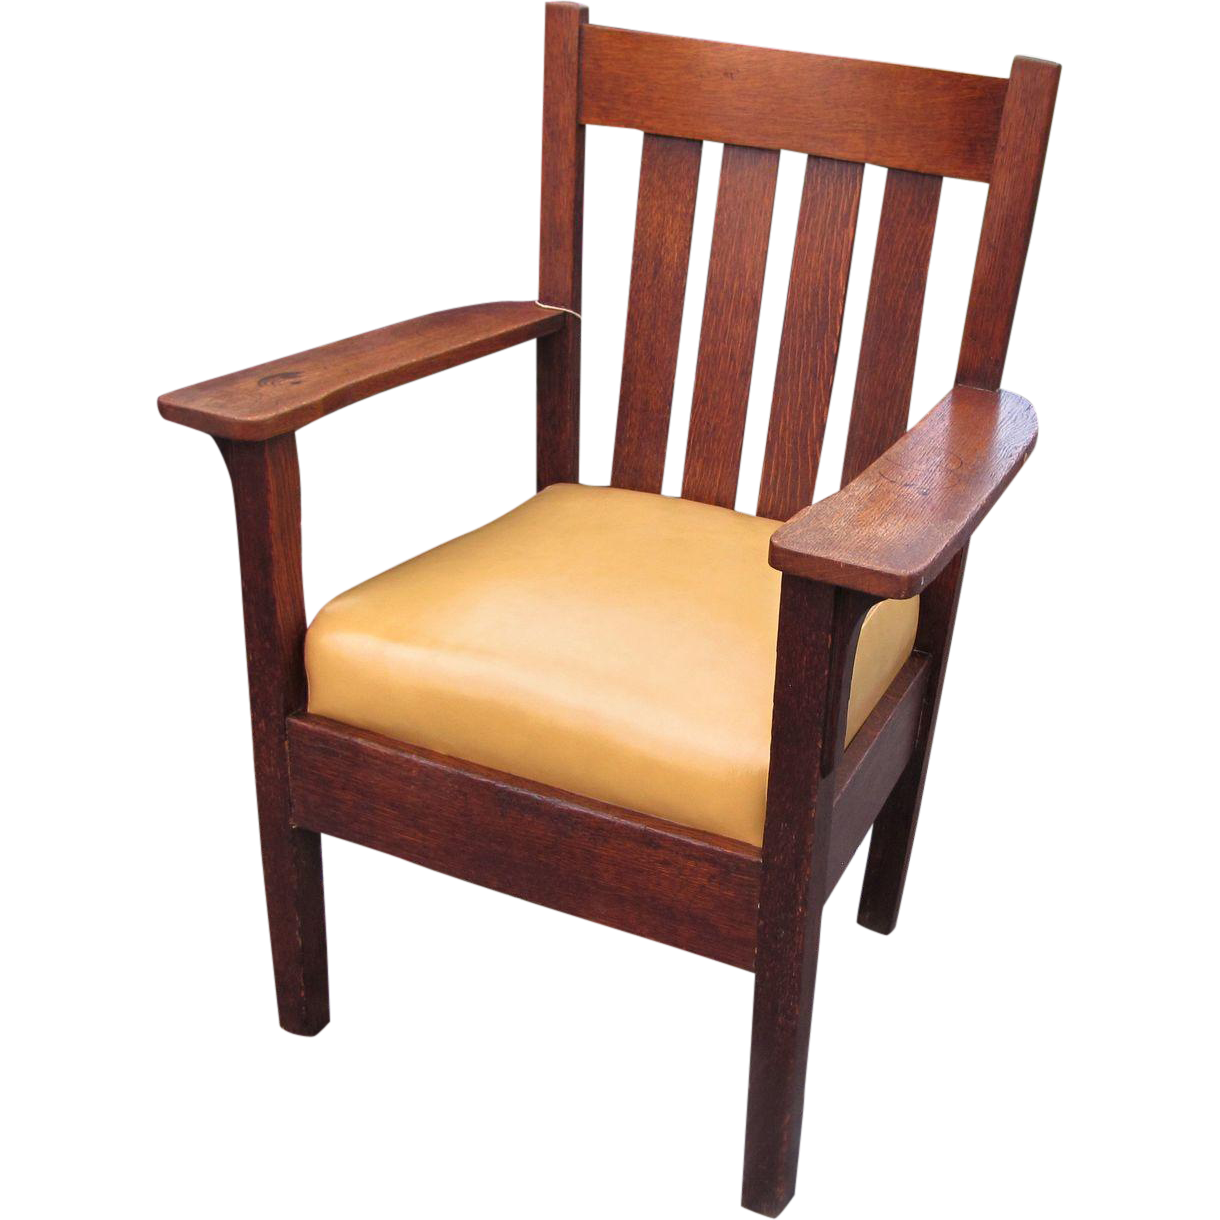 Antique  Ritter Craft  Arm Chair w279 from antique mission furniture on  Ruby Lane. Antique  Ritter Craft  Arm Chair w279 from antique mission